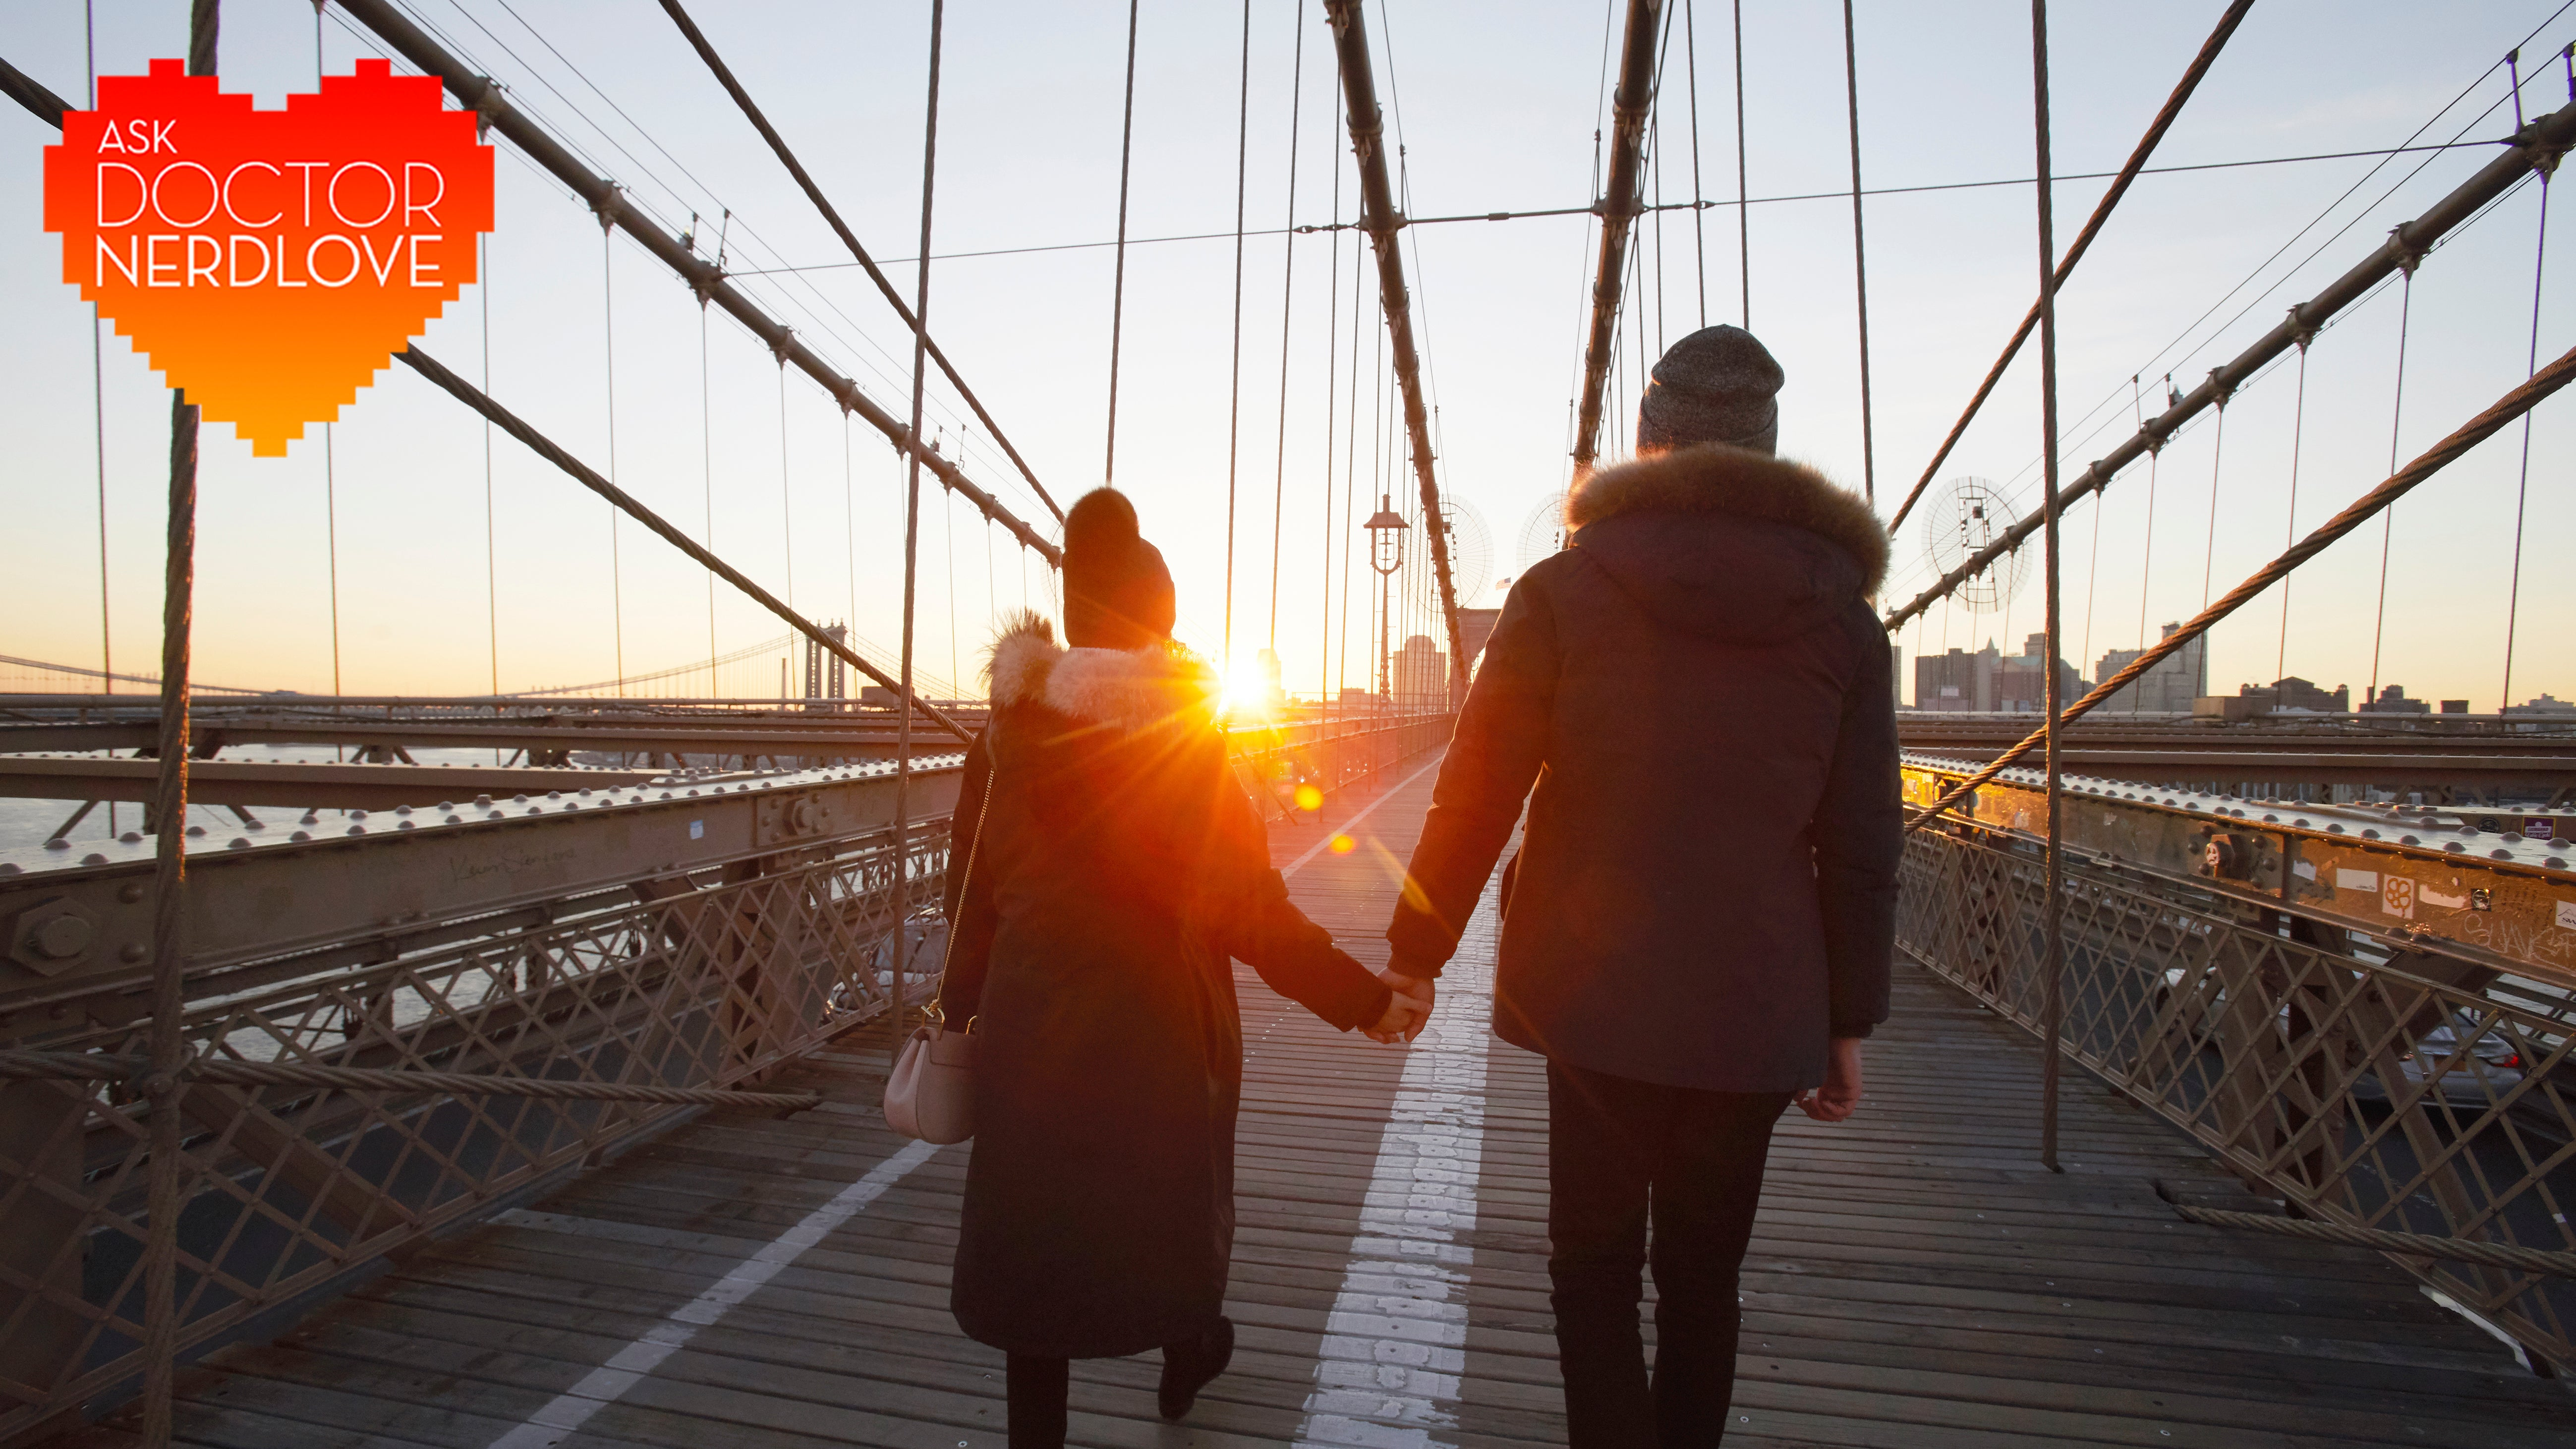 Ask Dr. NerdLove: Is My Casual Relationship Getting Serious?